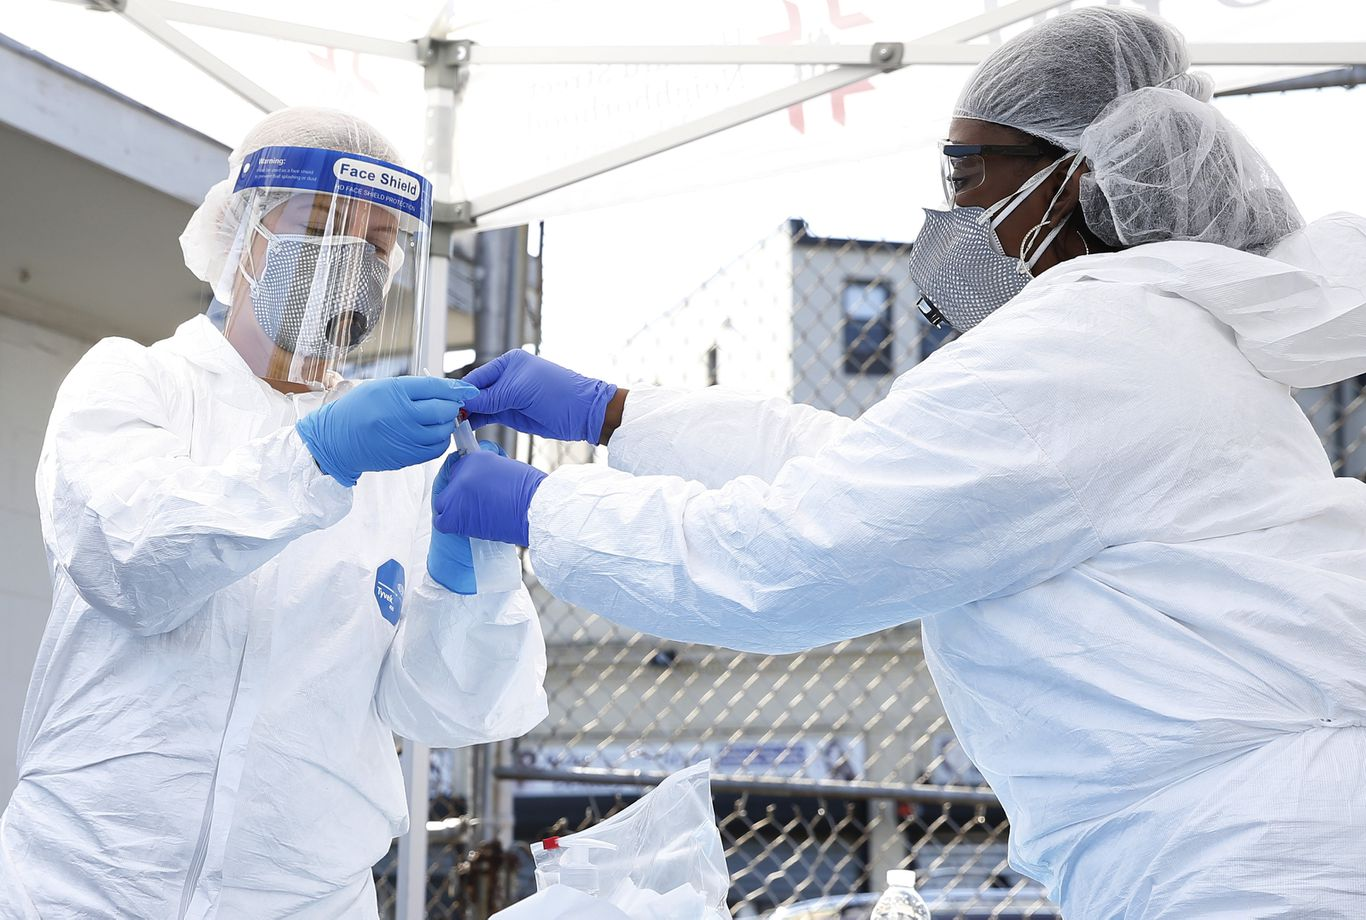 U.S. hits highest daily COVID-19 case count since pandemic began thumbnail